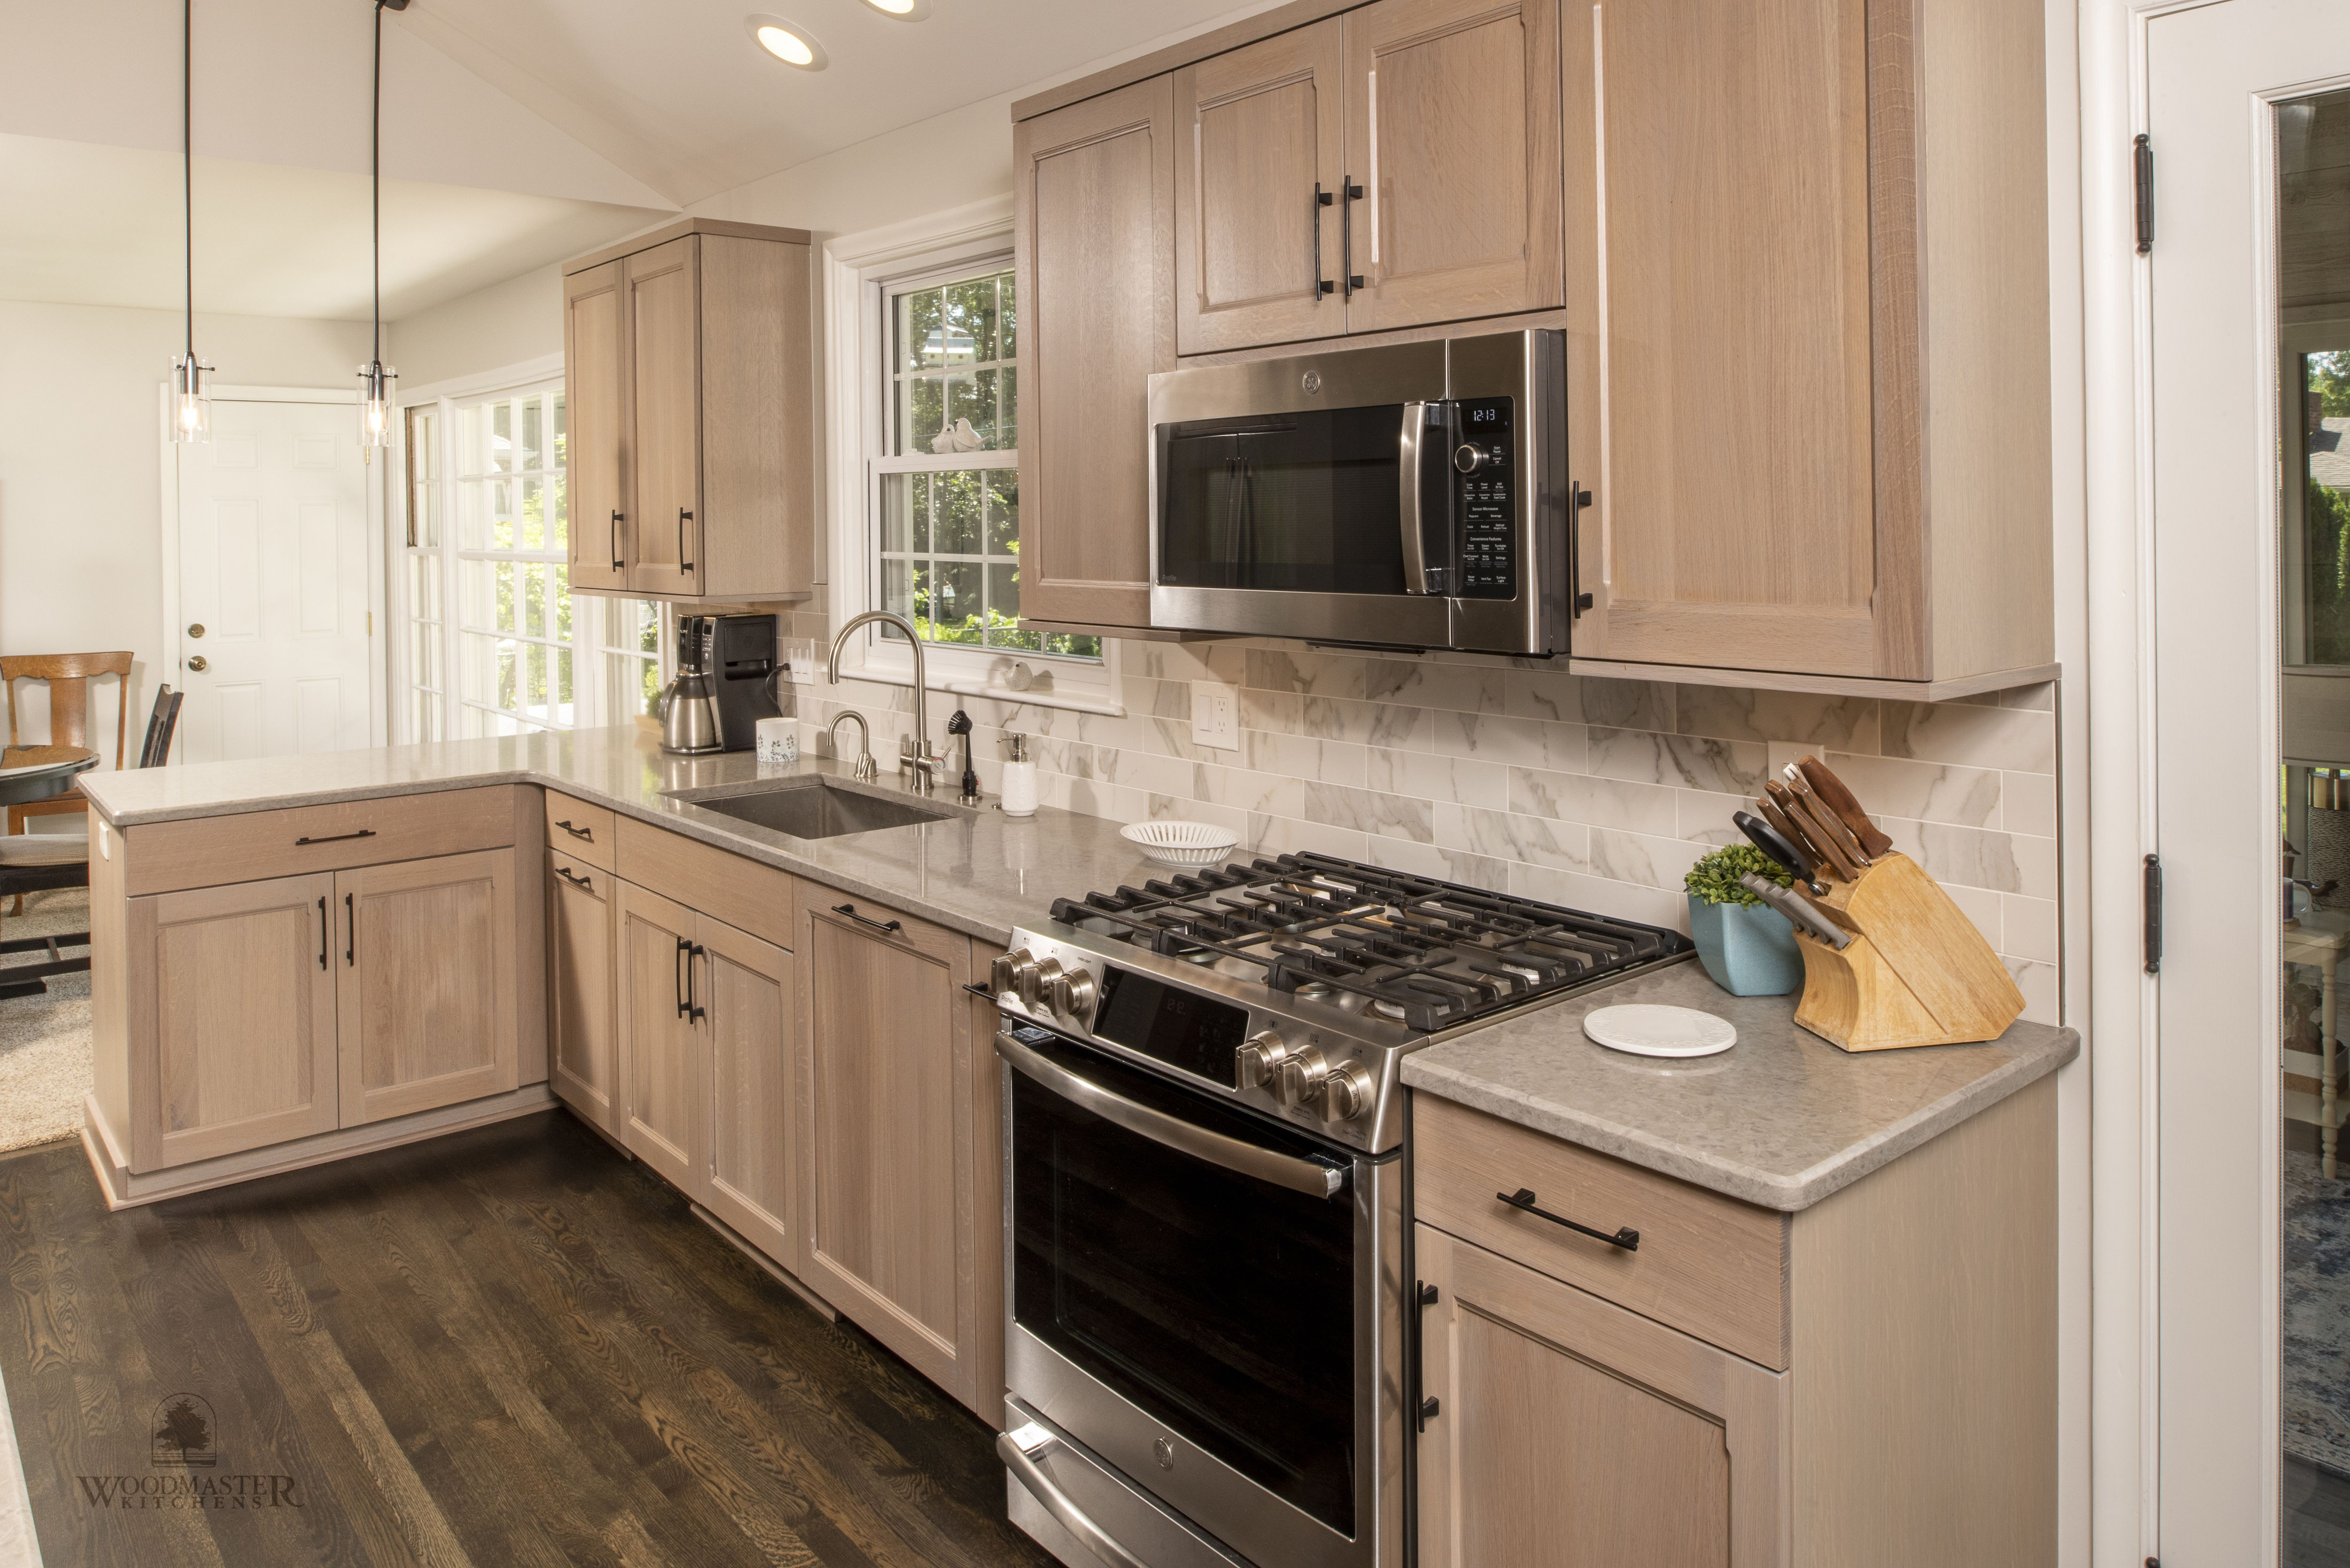 Are You Ready To Kick Start Your Home Remodeling Plans This Summer Contact The Team At Woodmaster Kitch In 2020 Kitchen Cabinets Repair Kitchen Remodel Kitchen Design